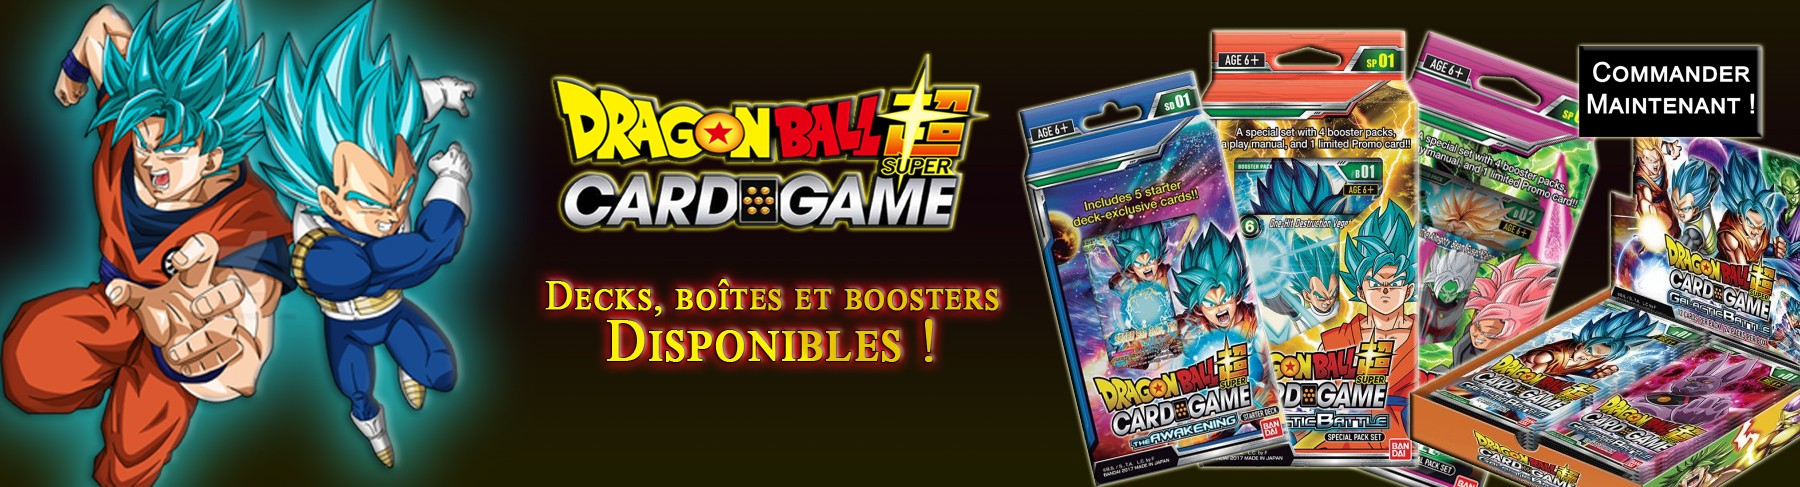 Dragon Ball Super le jeu de cartes !